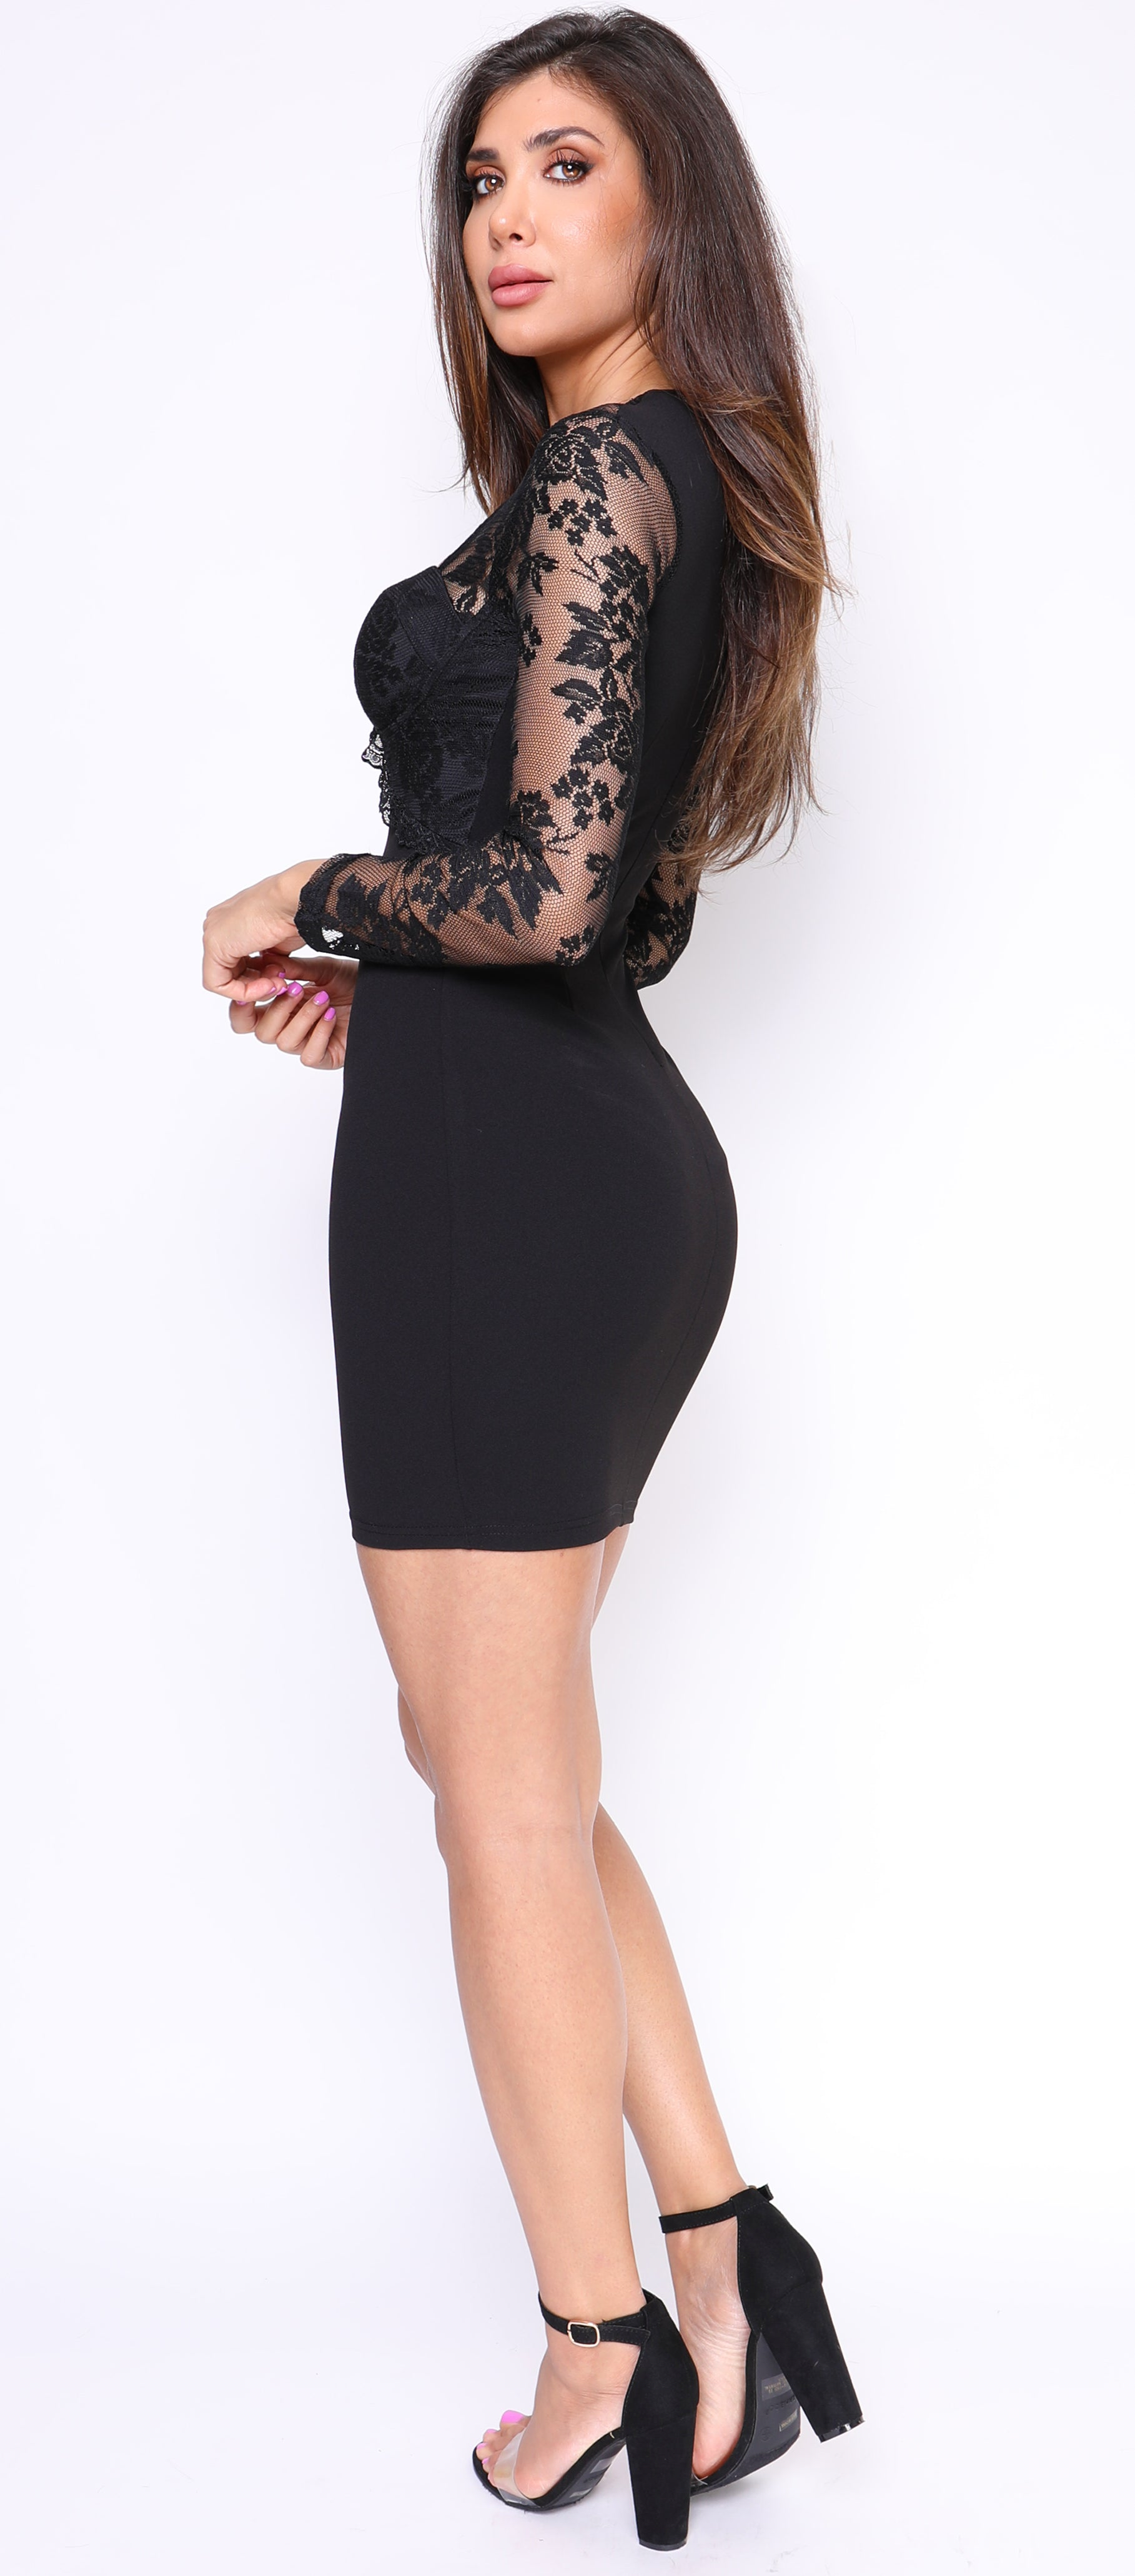 Trinity Black Lace Bustier Dress